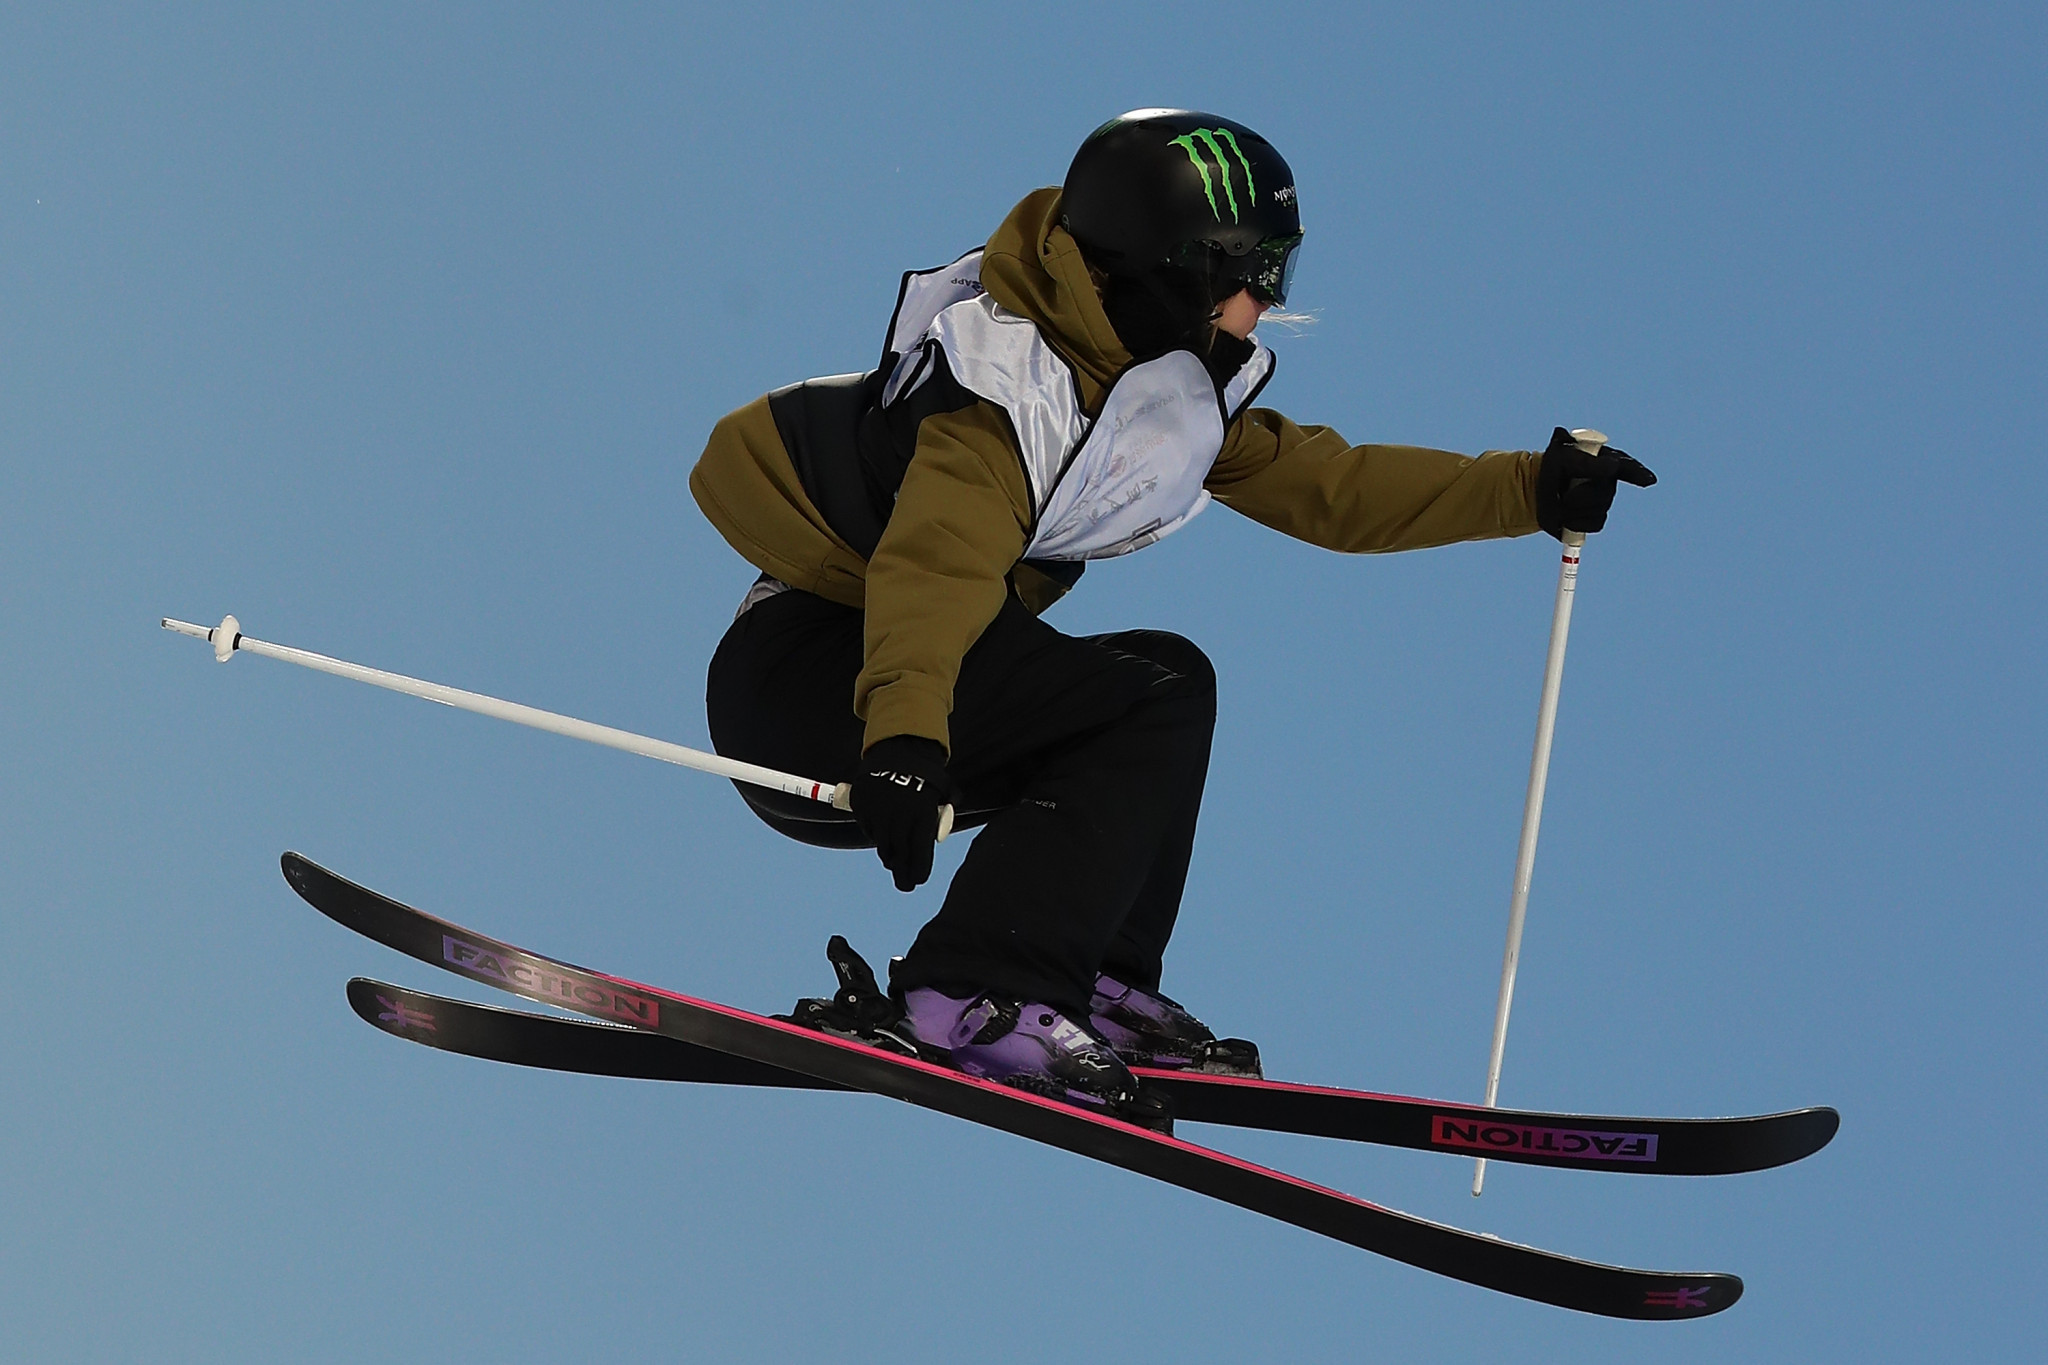 Tanno crowned overall big air champion after women's event cancelled at FIS Freeski World Cup